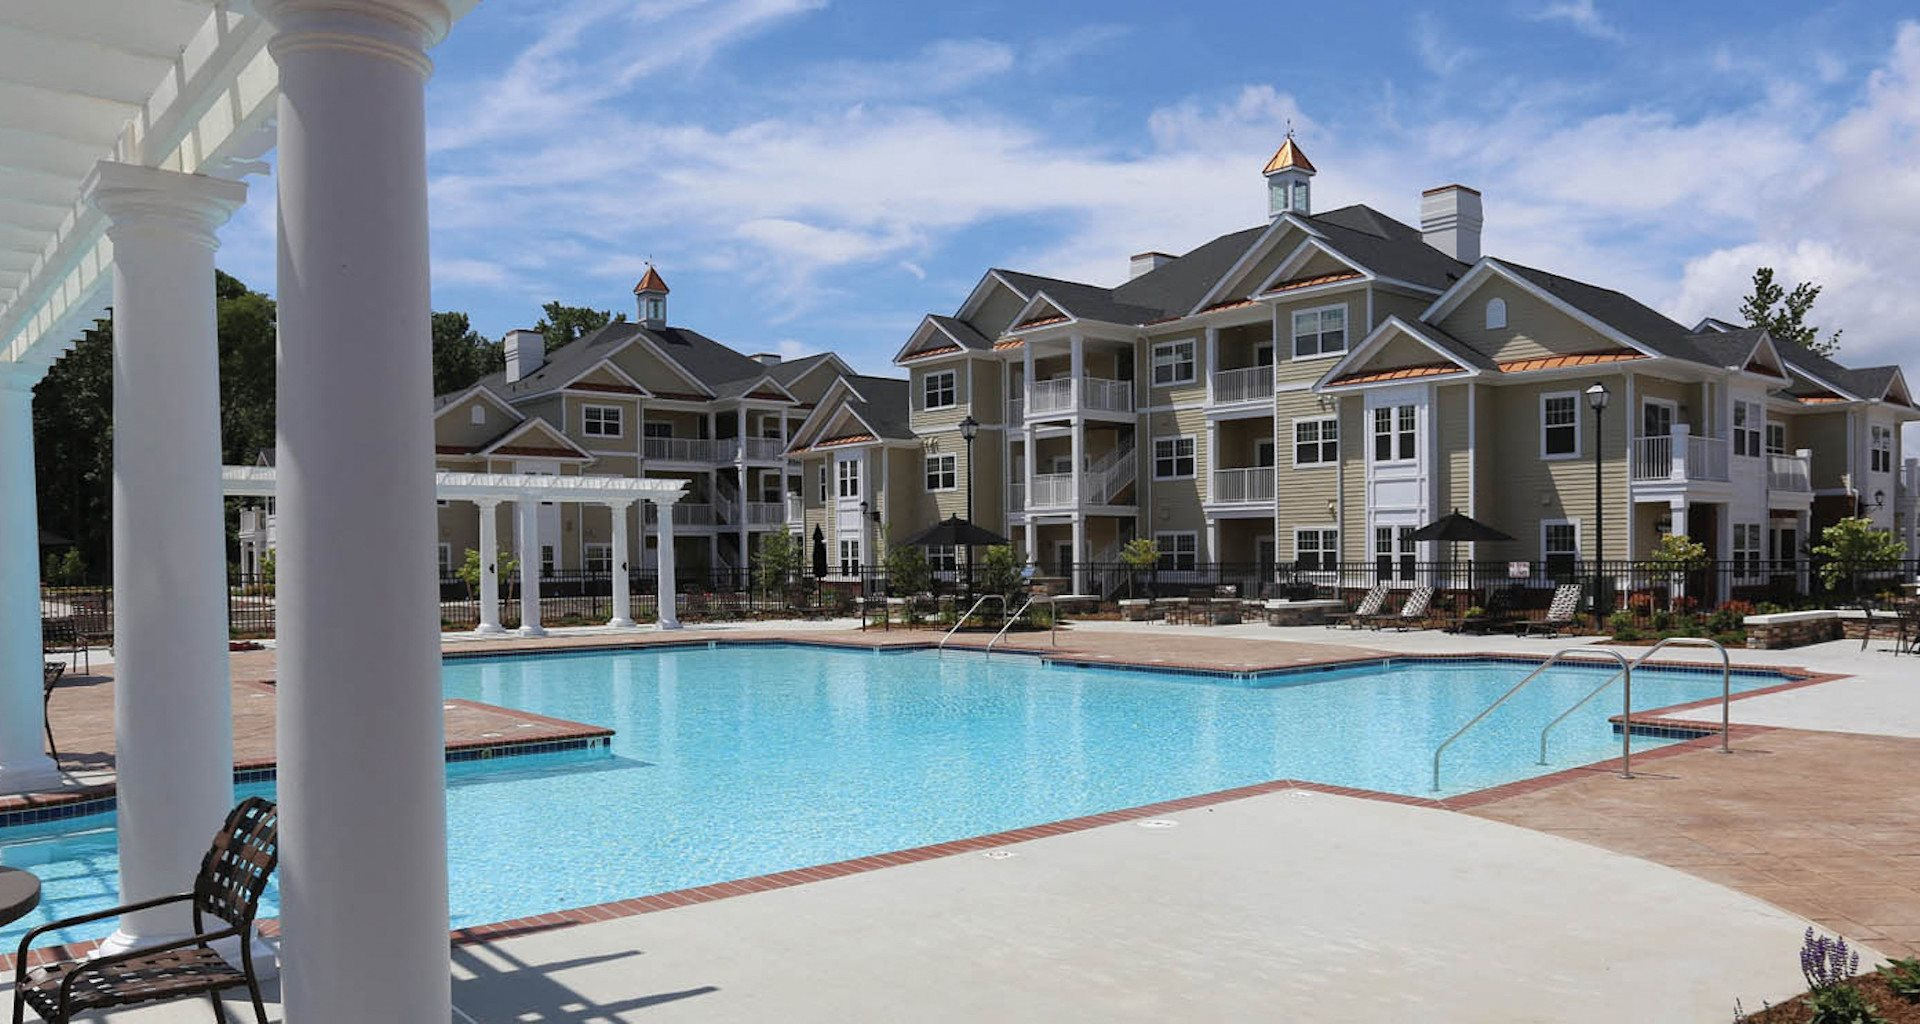 Fenwyck Manor Apartments Chesapeake, VA 23320 pergola and swimming pool